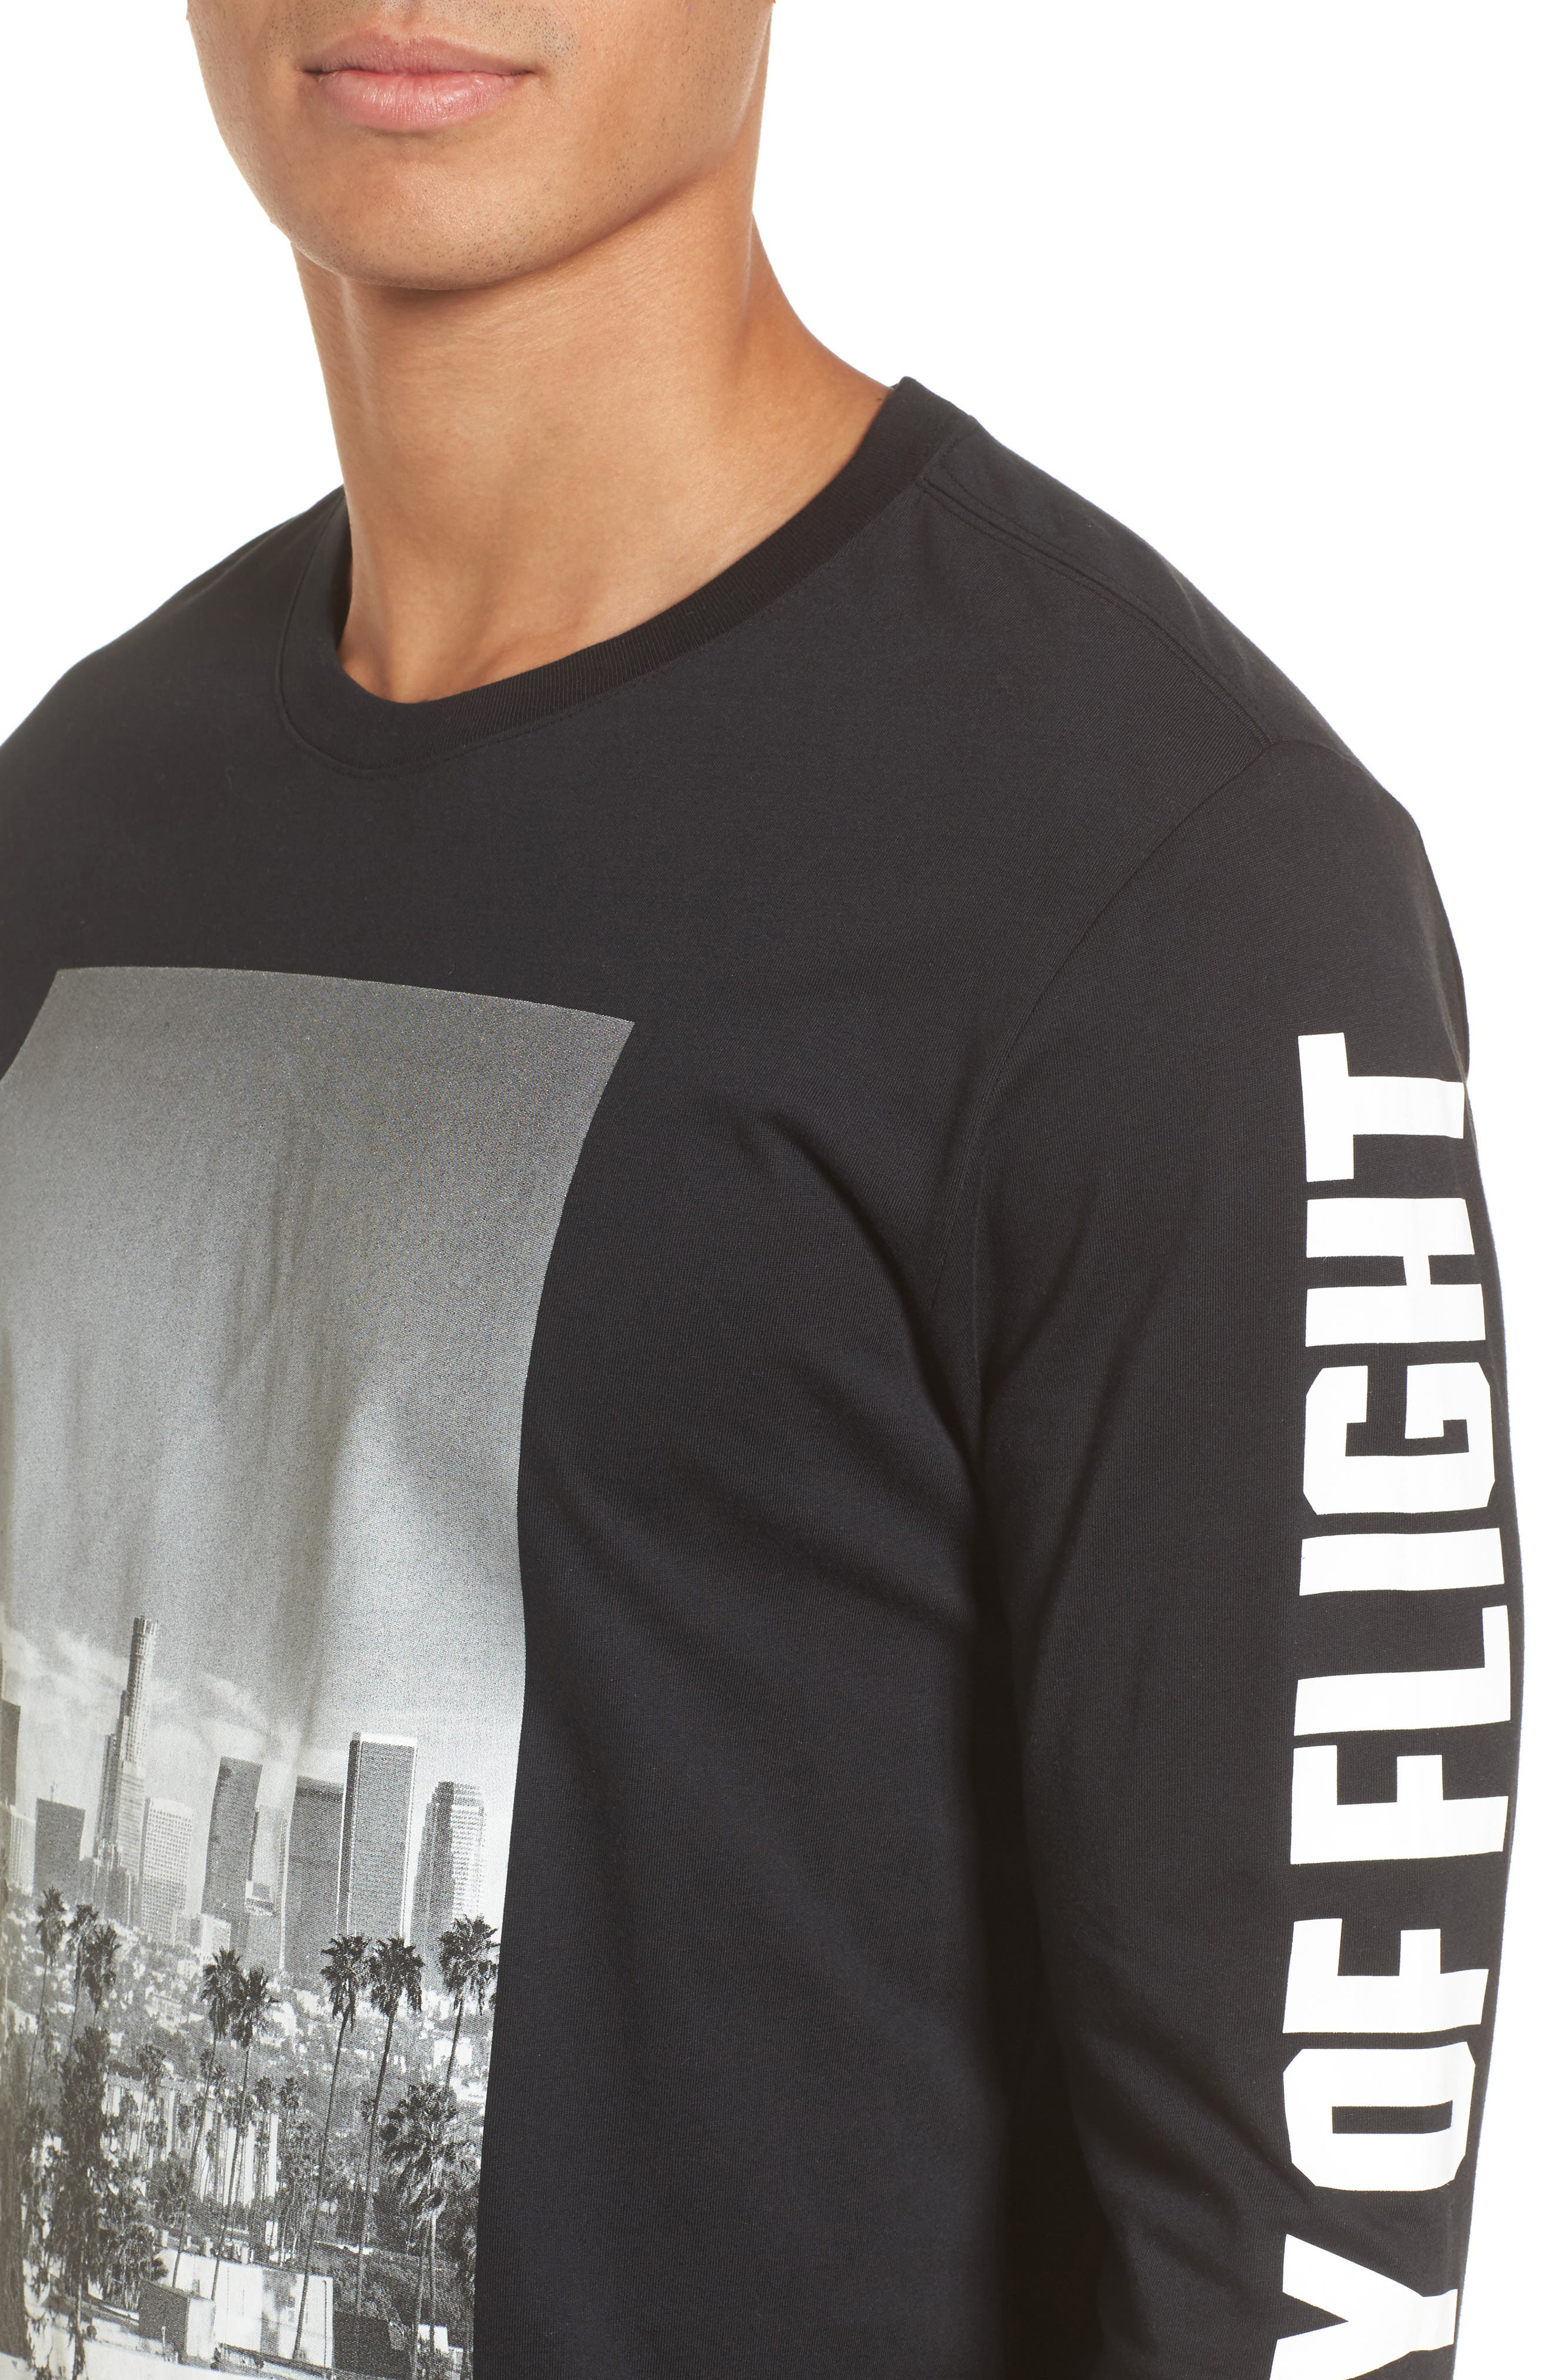 City of Flight T-Shirt,                             Alternate thumbnail 4, color,                             010